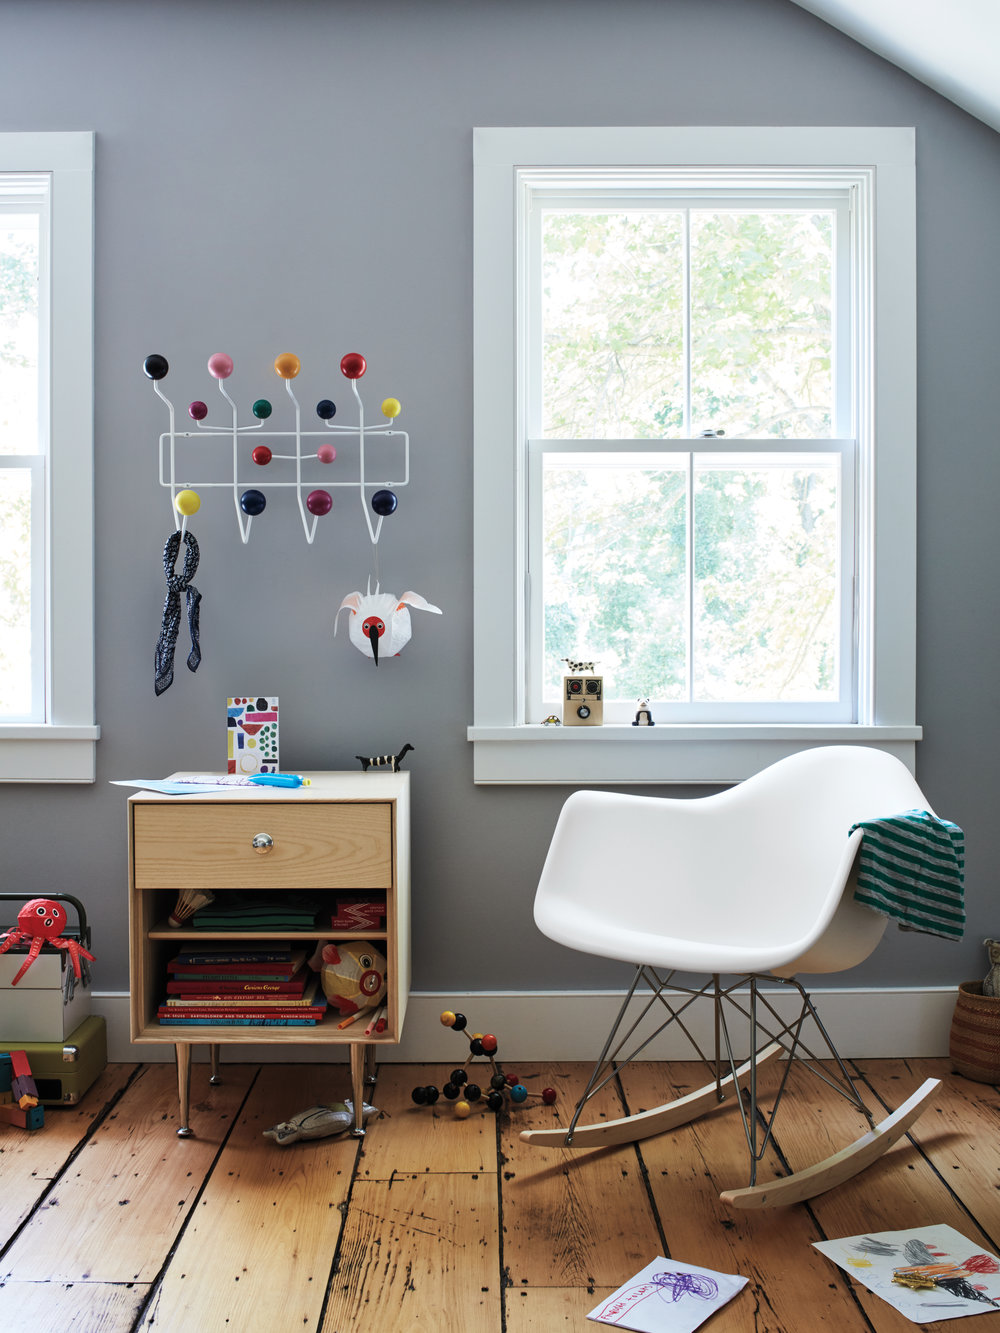 HM_Rhinebeck_13_KidsBedroom_Eames_HangItAll_038_Hero-crop.jpg